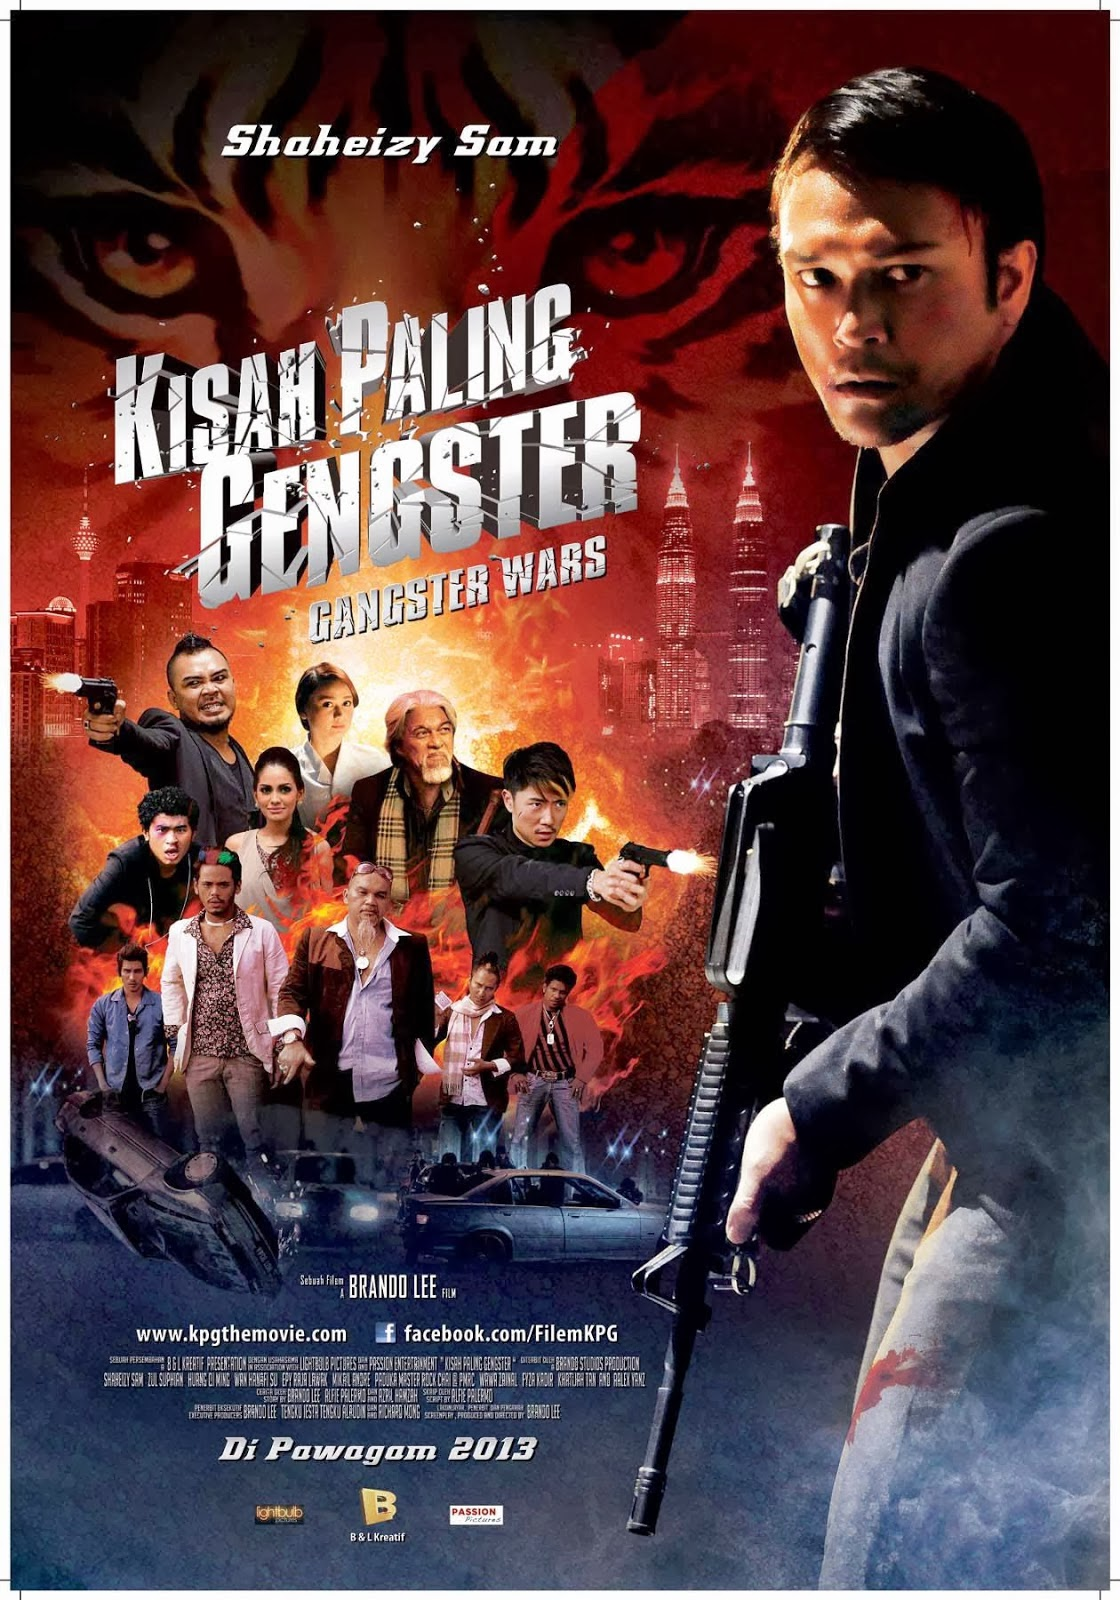 Kisah Paling Gengster 2013 Full Movie Online Streaming